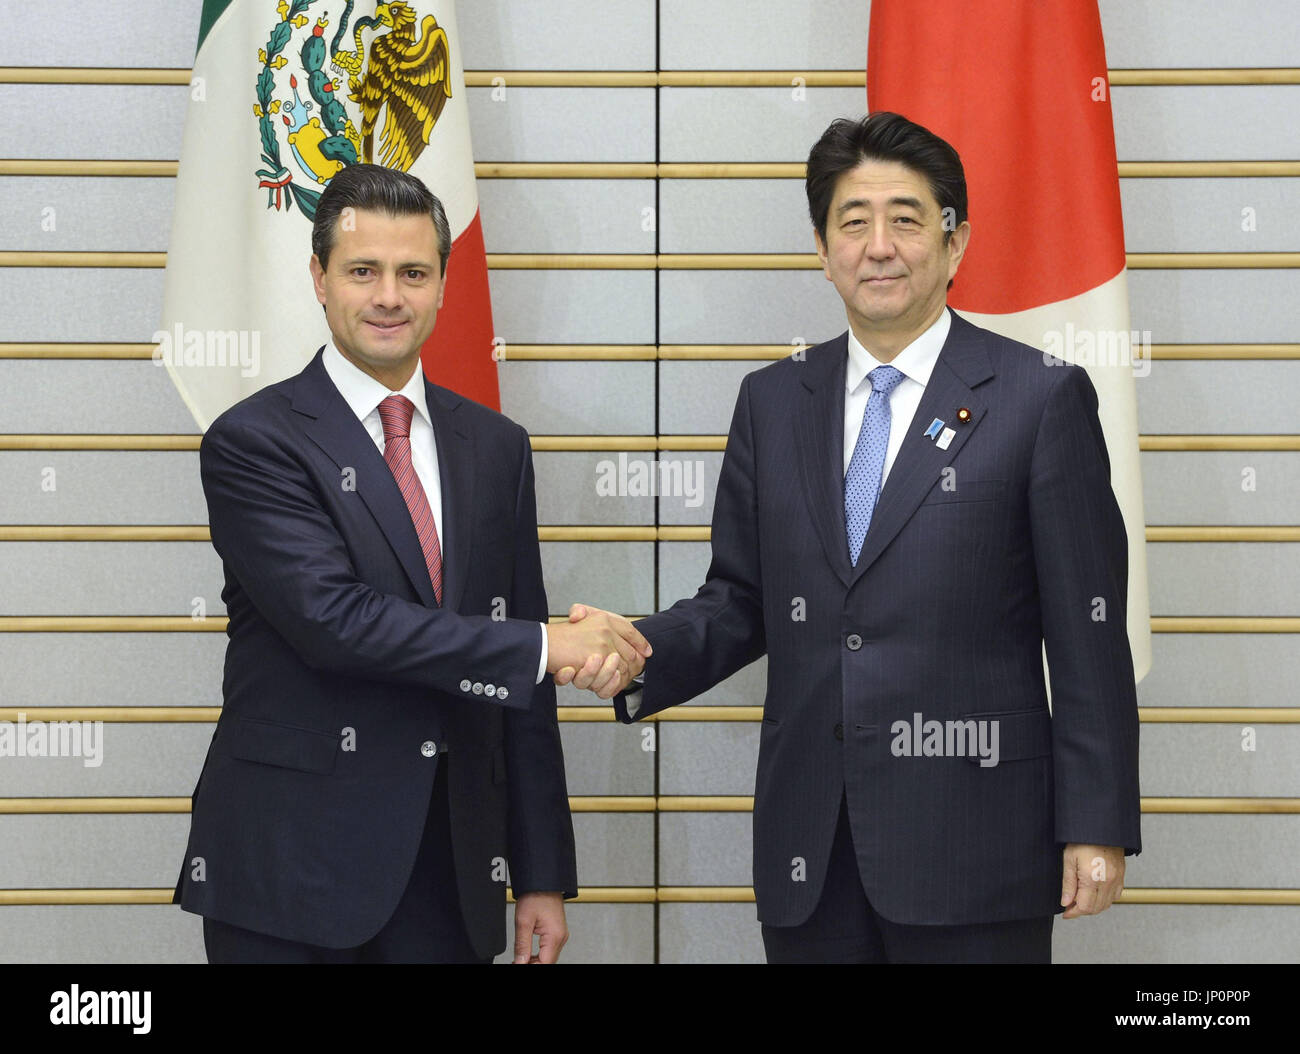 ¿Cuánto mide Enrique Peña Nieto? - Real height Tokyo-japan-mexican-president-enrique-pena-nieto-l-and-japanese-prime-JP0P0P